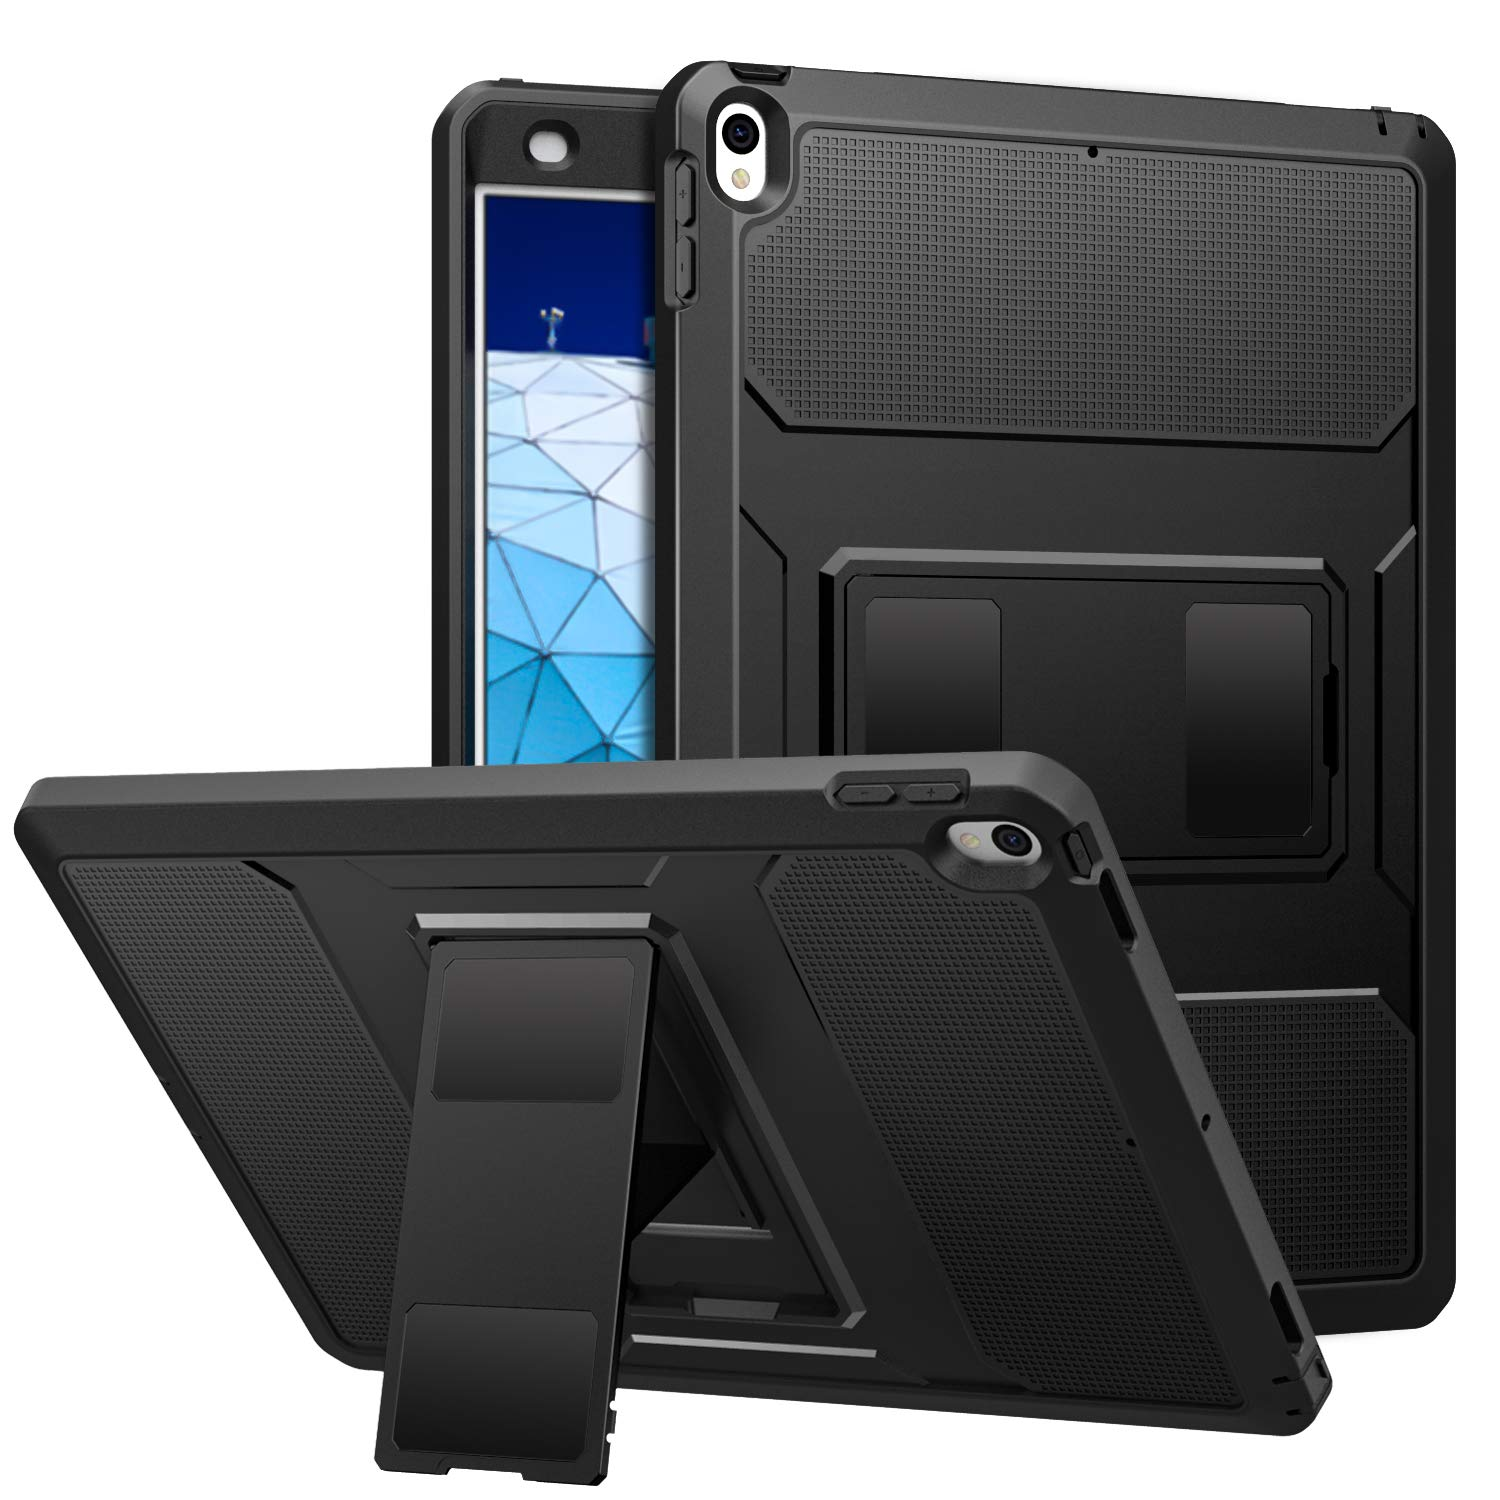 """MoKo Case Fit New iPad Air 3rd Generation 10.5"""" 2019/iPad Pro 10.5 2017, Full-Body Rugged Protective Case with Built-in Screen Protector Design for iPad Air 3 2019 Tablet - Black"""